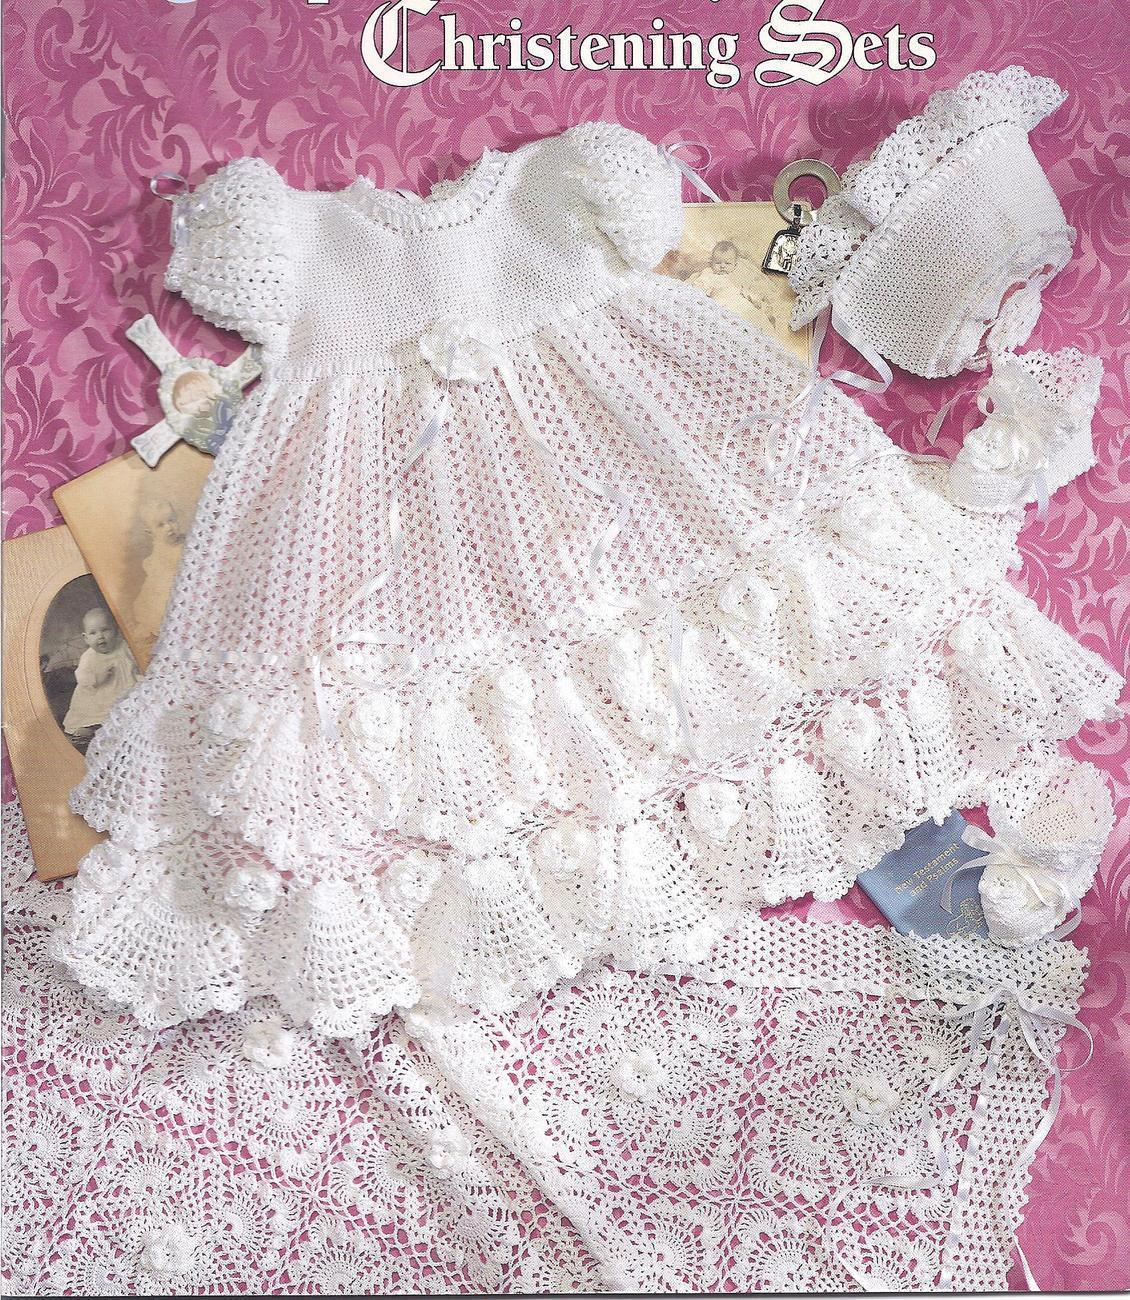 Christening Dress Knitting Pattern Free: Foliage lace christening ...